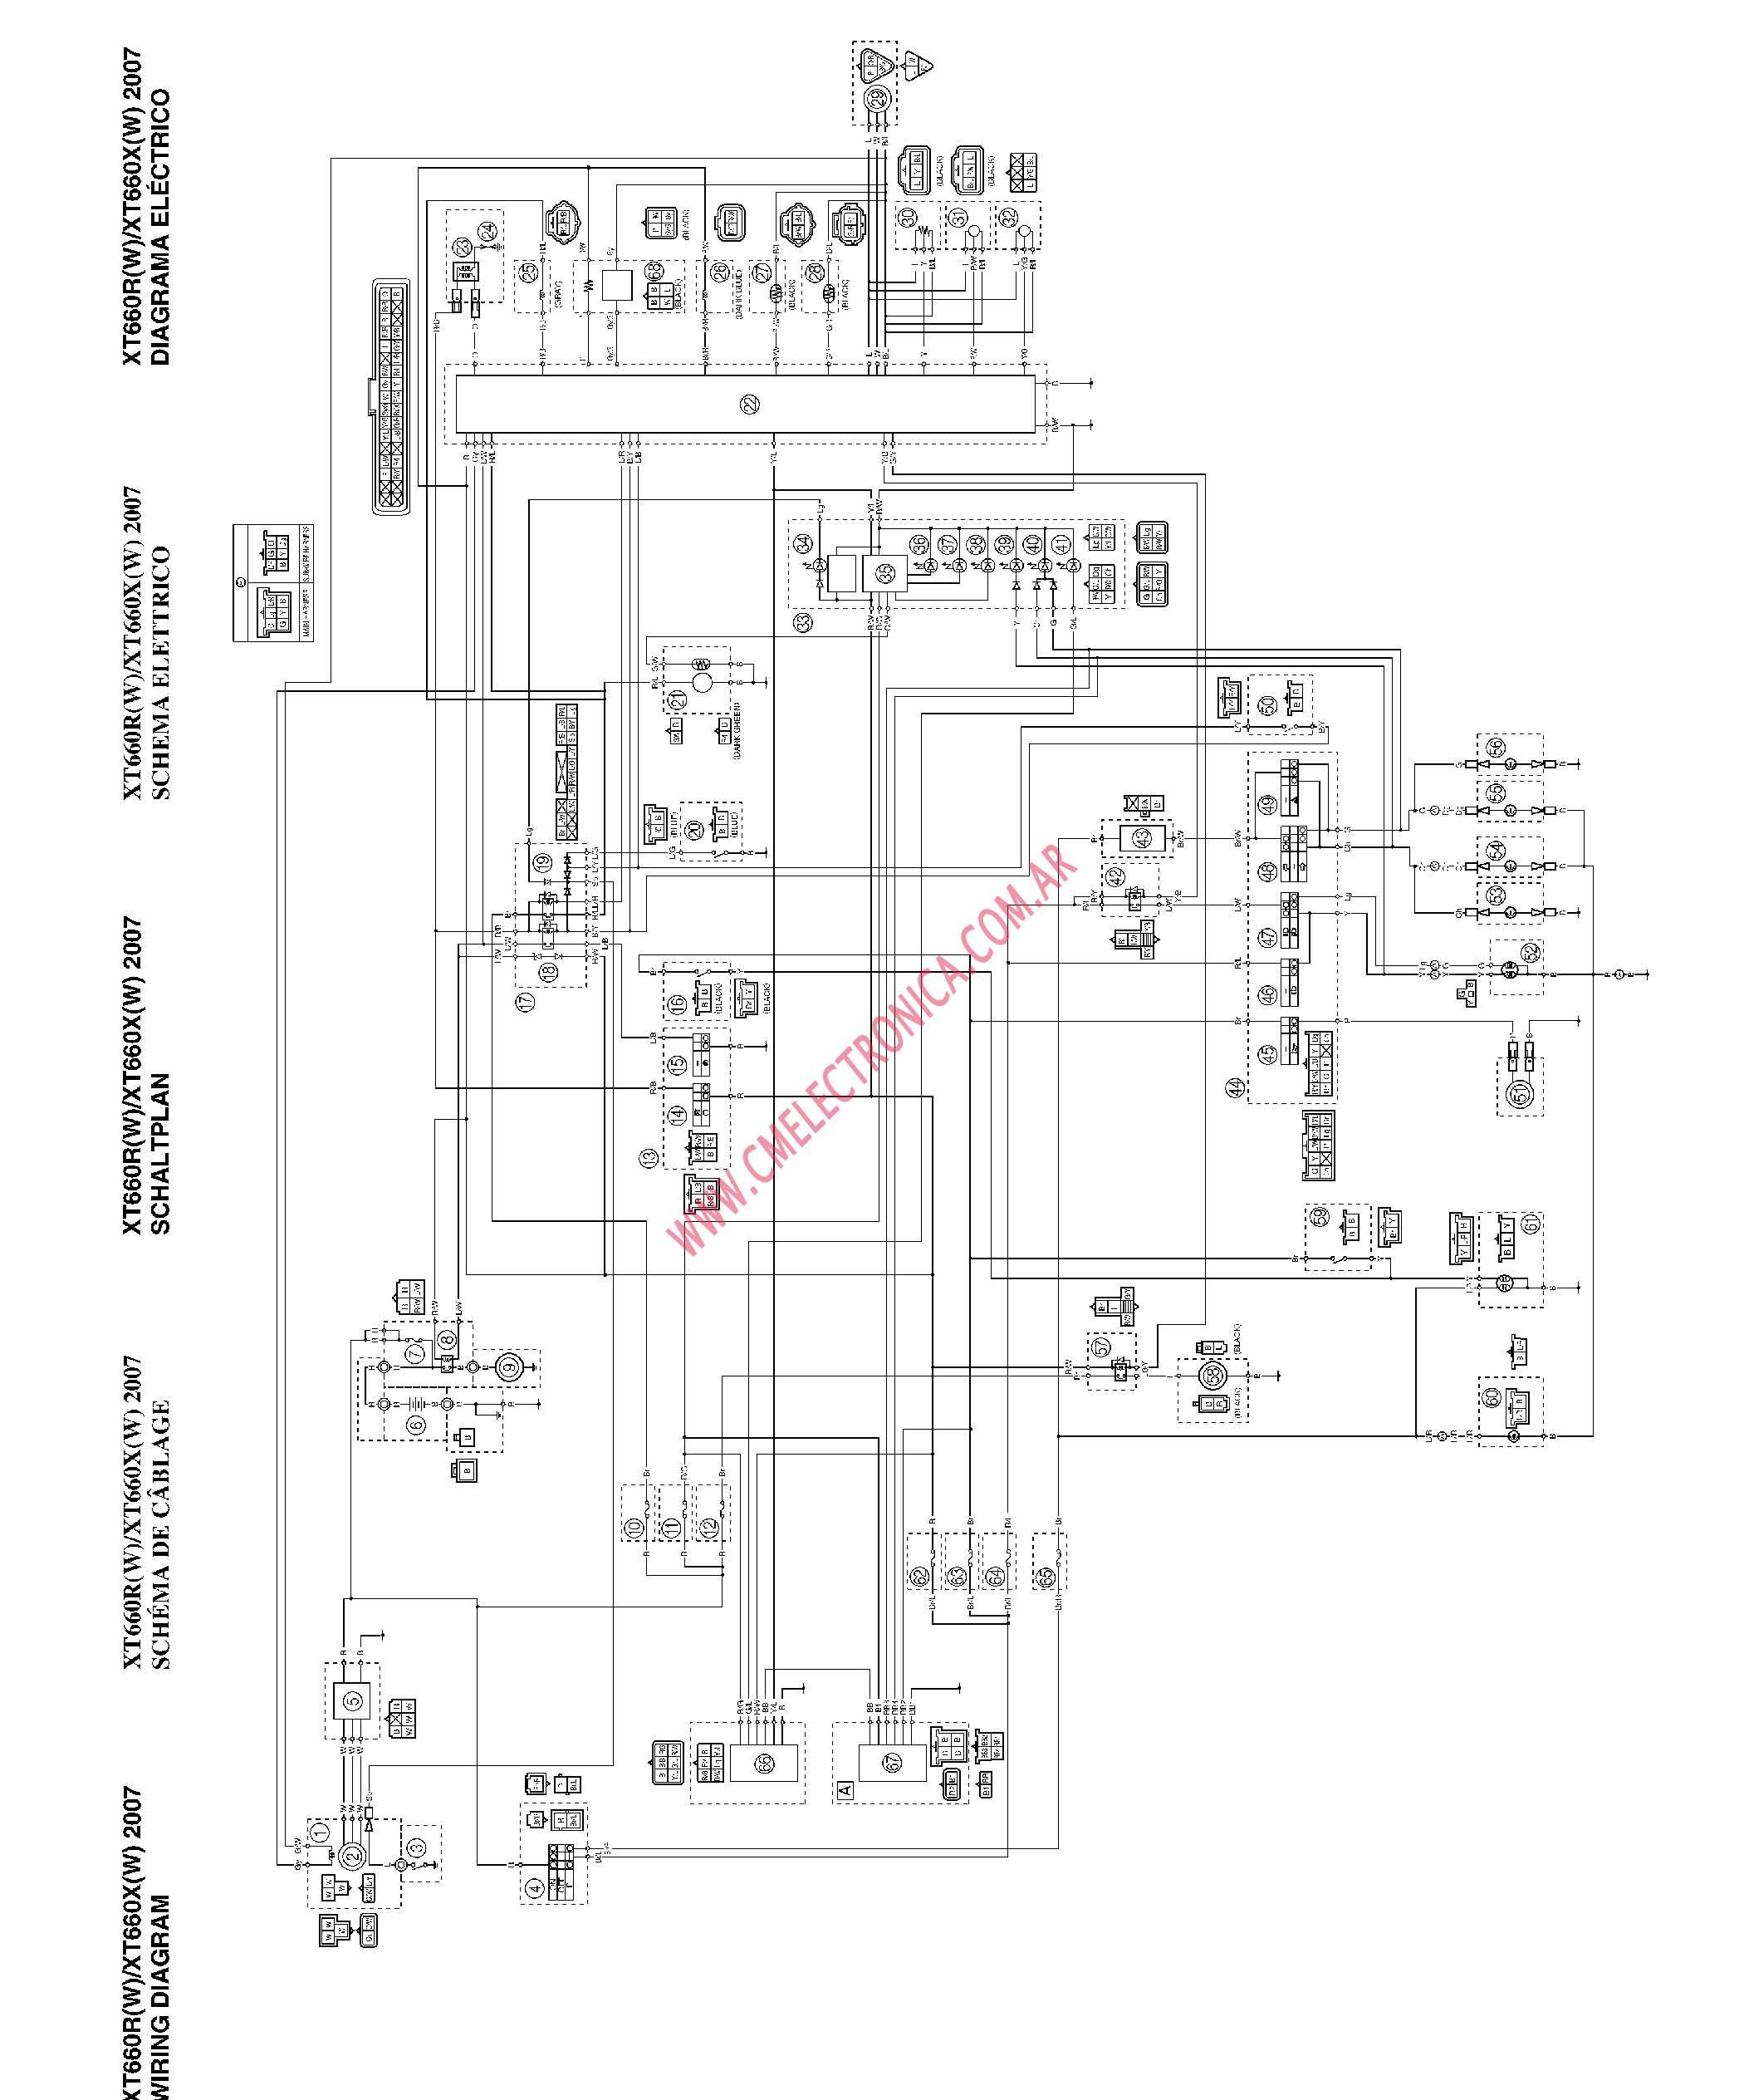 banshee wiring diagram awesome